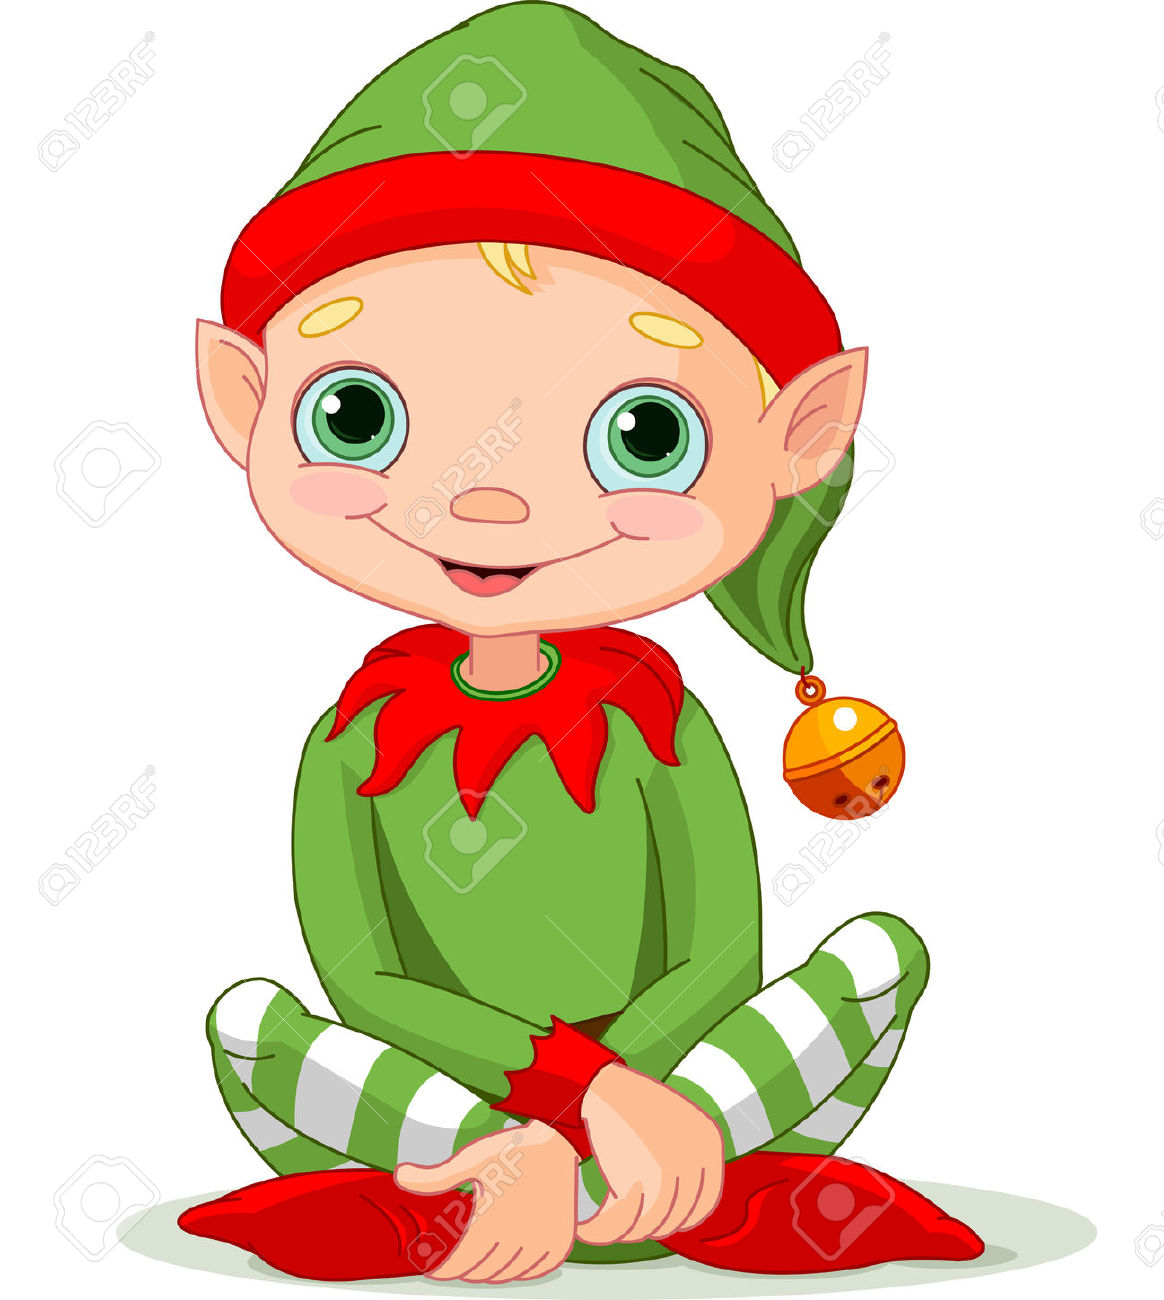 Elf clipart small Elf Clipground Elf Elf And